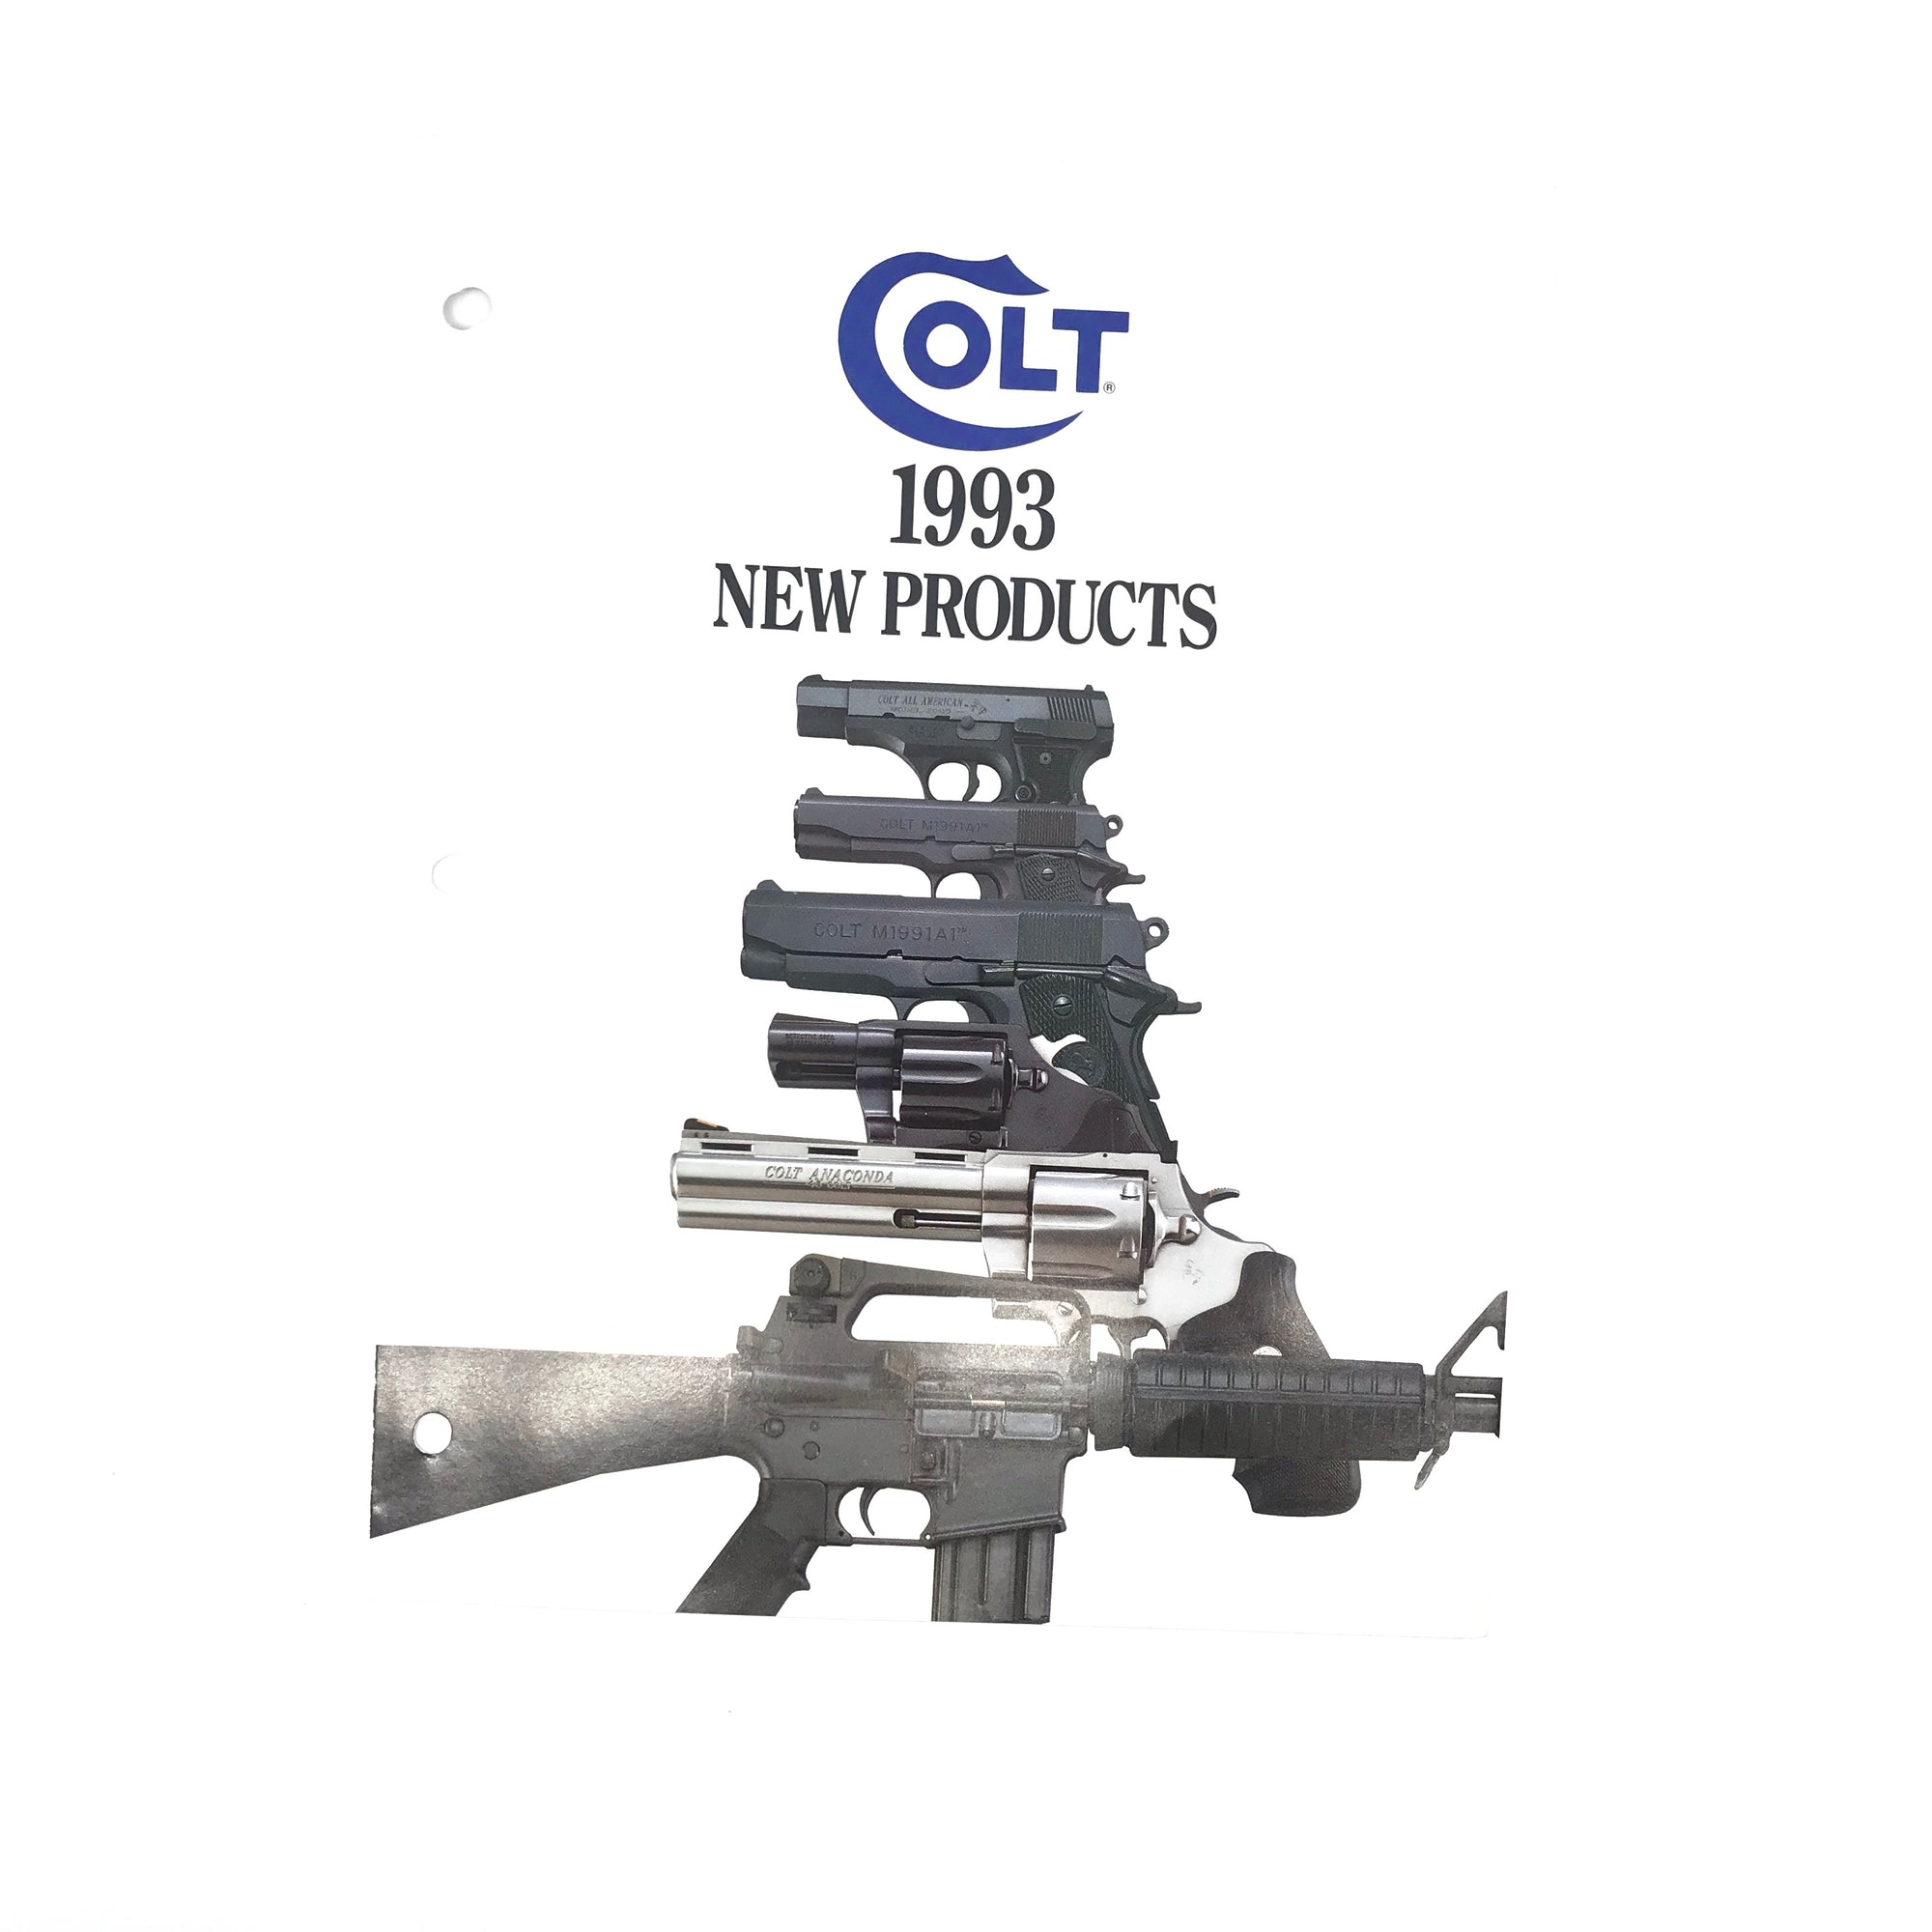 Colt 1993 New Products Catalogue